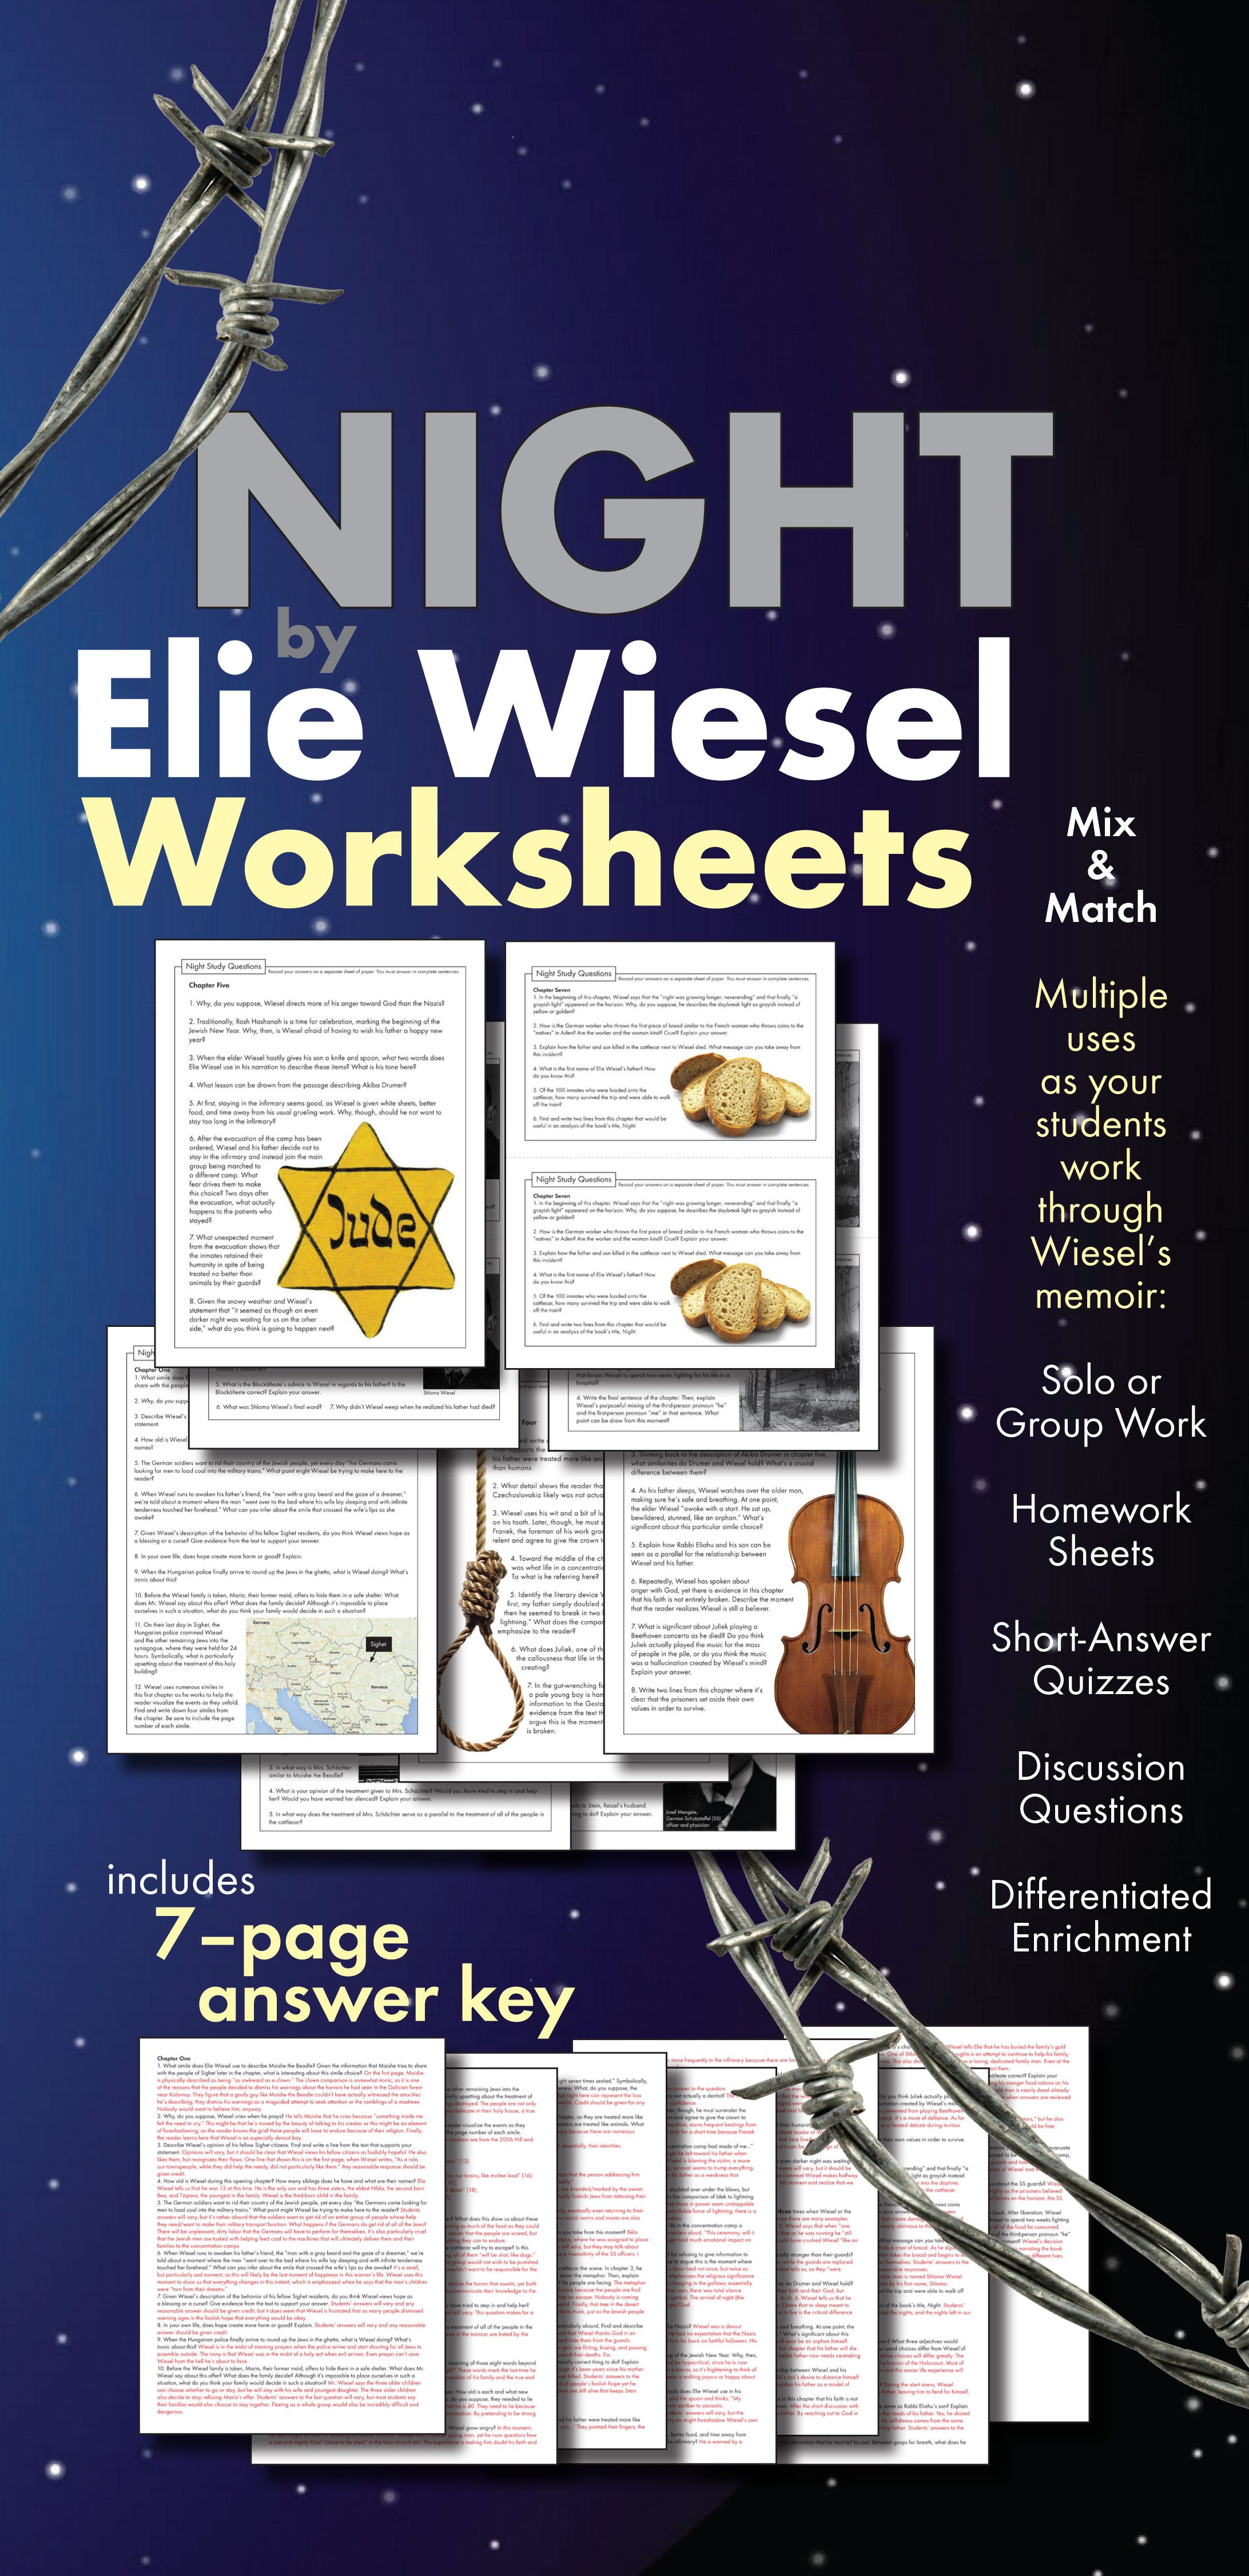 night by elie wiesel worksheets hw discussion questions for ww great support for any study of night elie wiesel s haunting ww2 memoir highschoolenglish